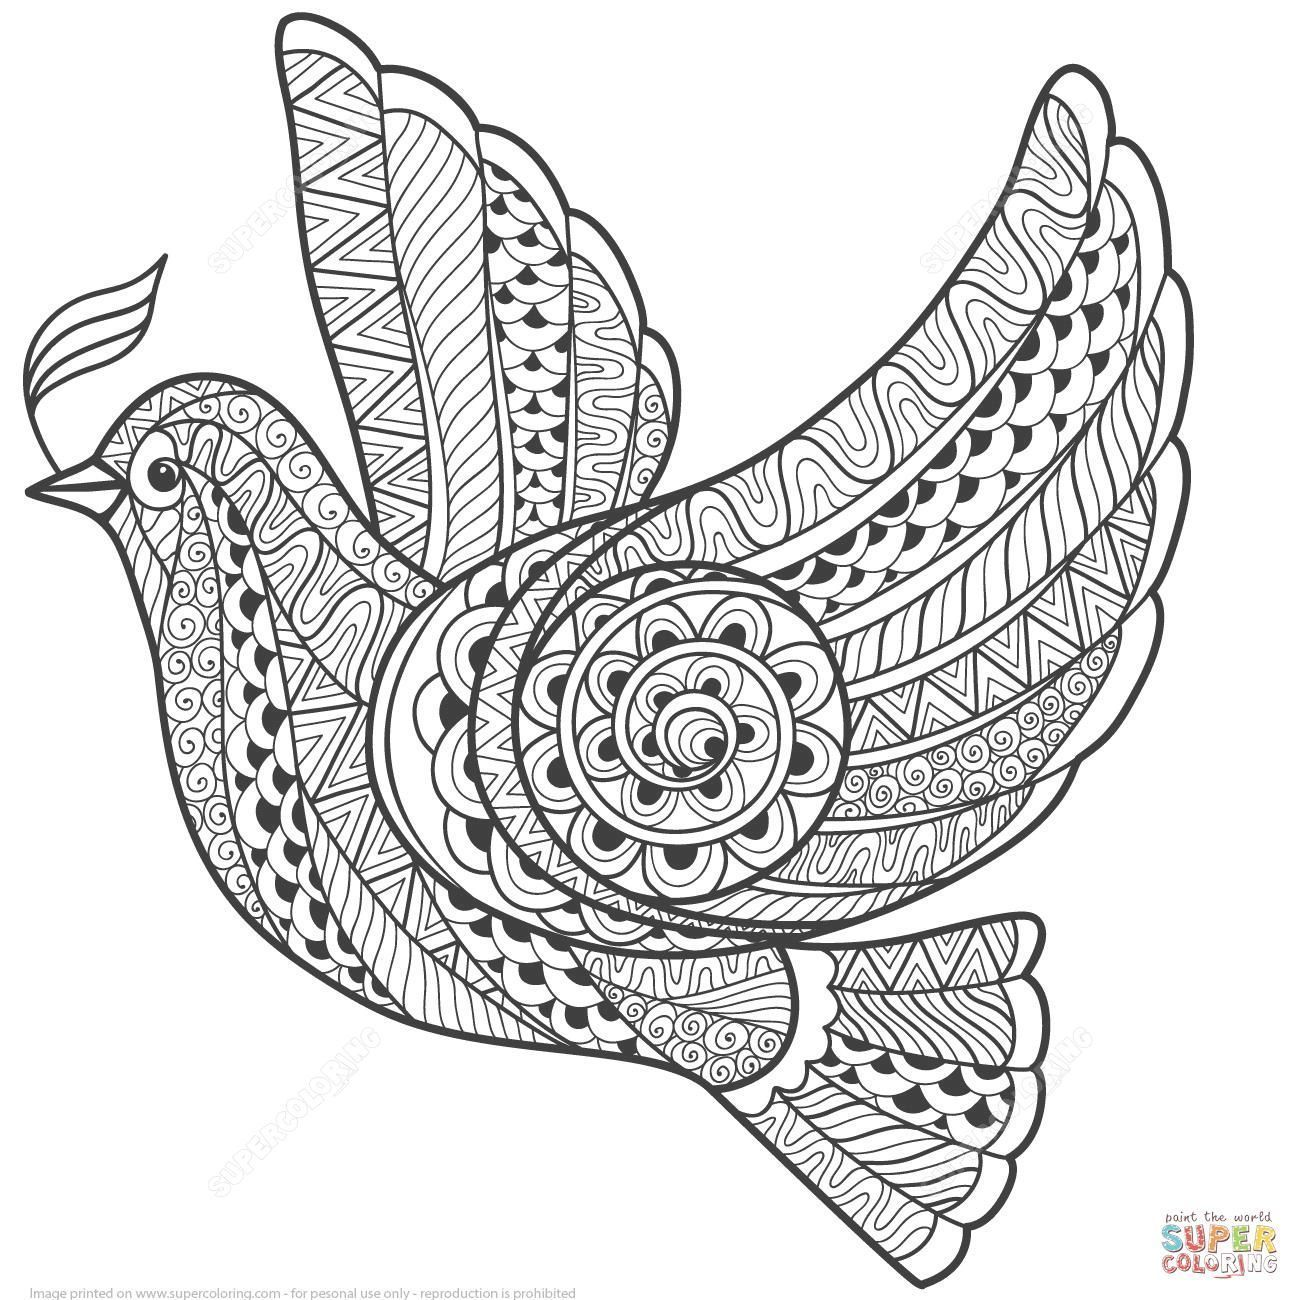 Easy Zentangle Coloring Pages at GetDrawings com | Free for personal